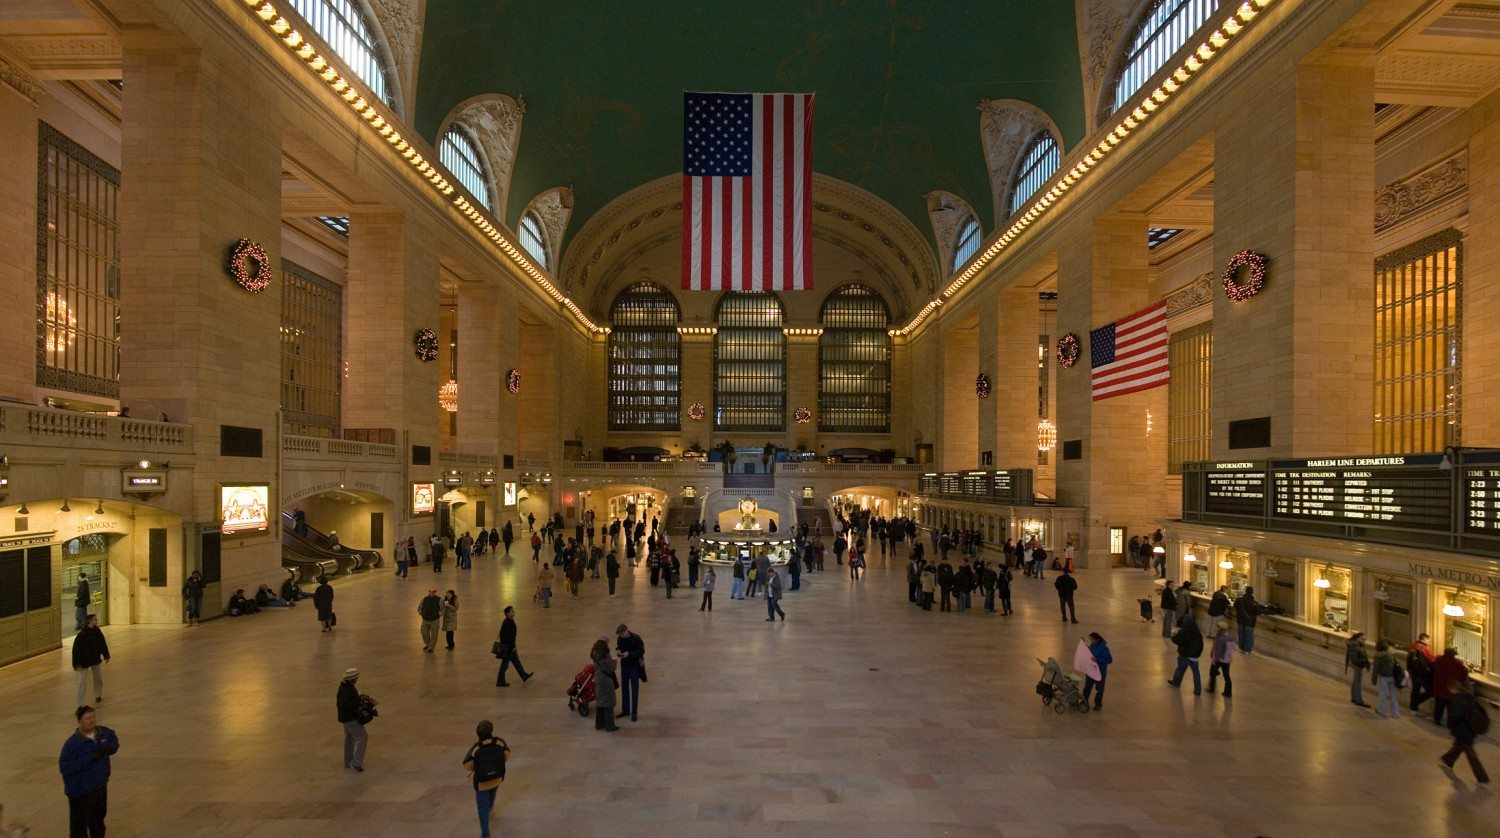 Expect lots of holiday fun at Grand Central Terminal